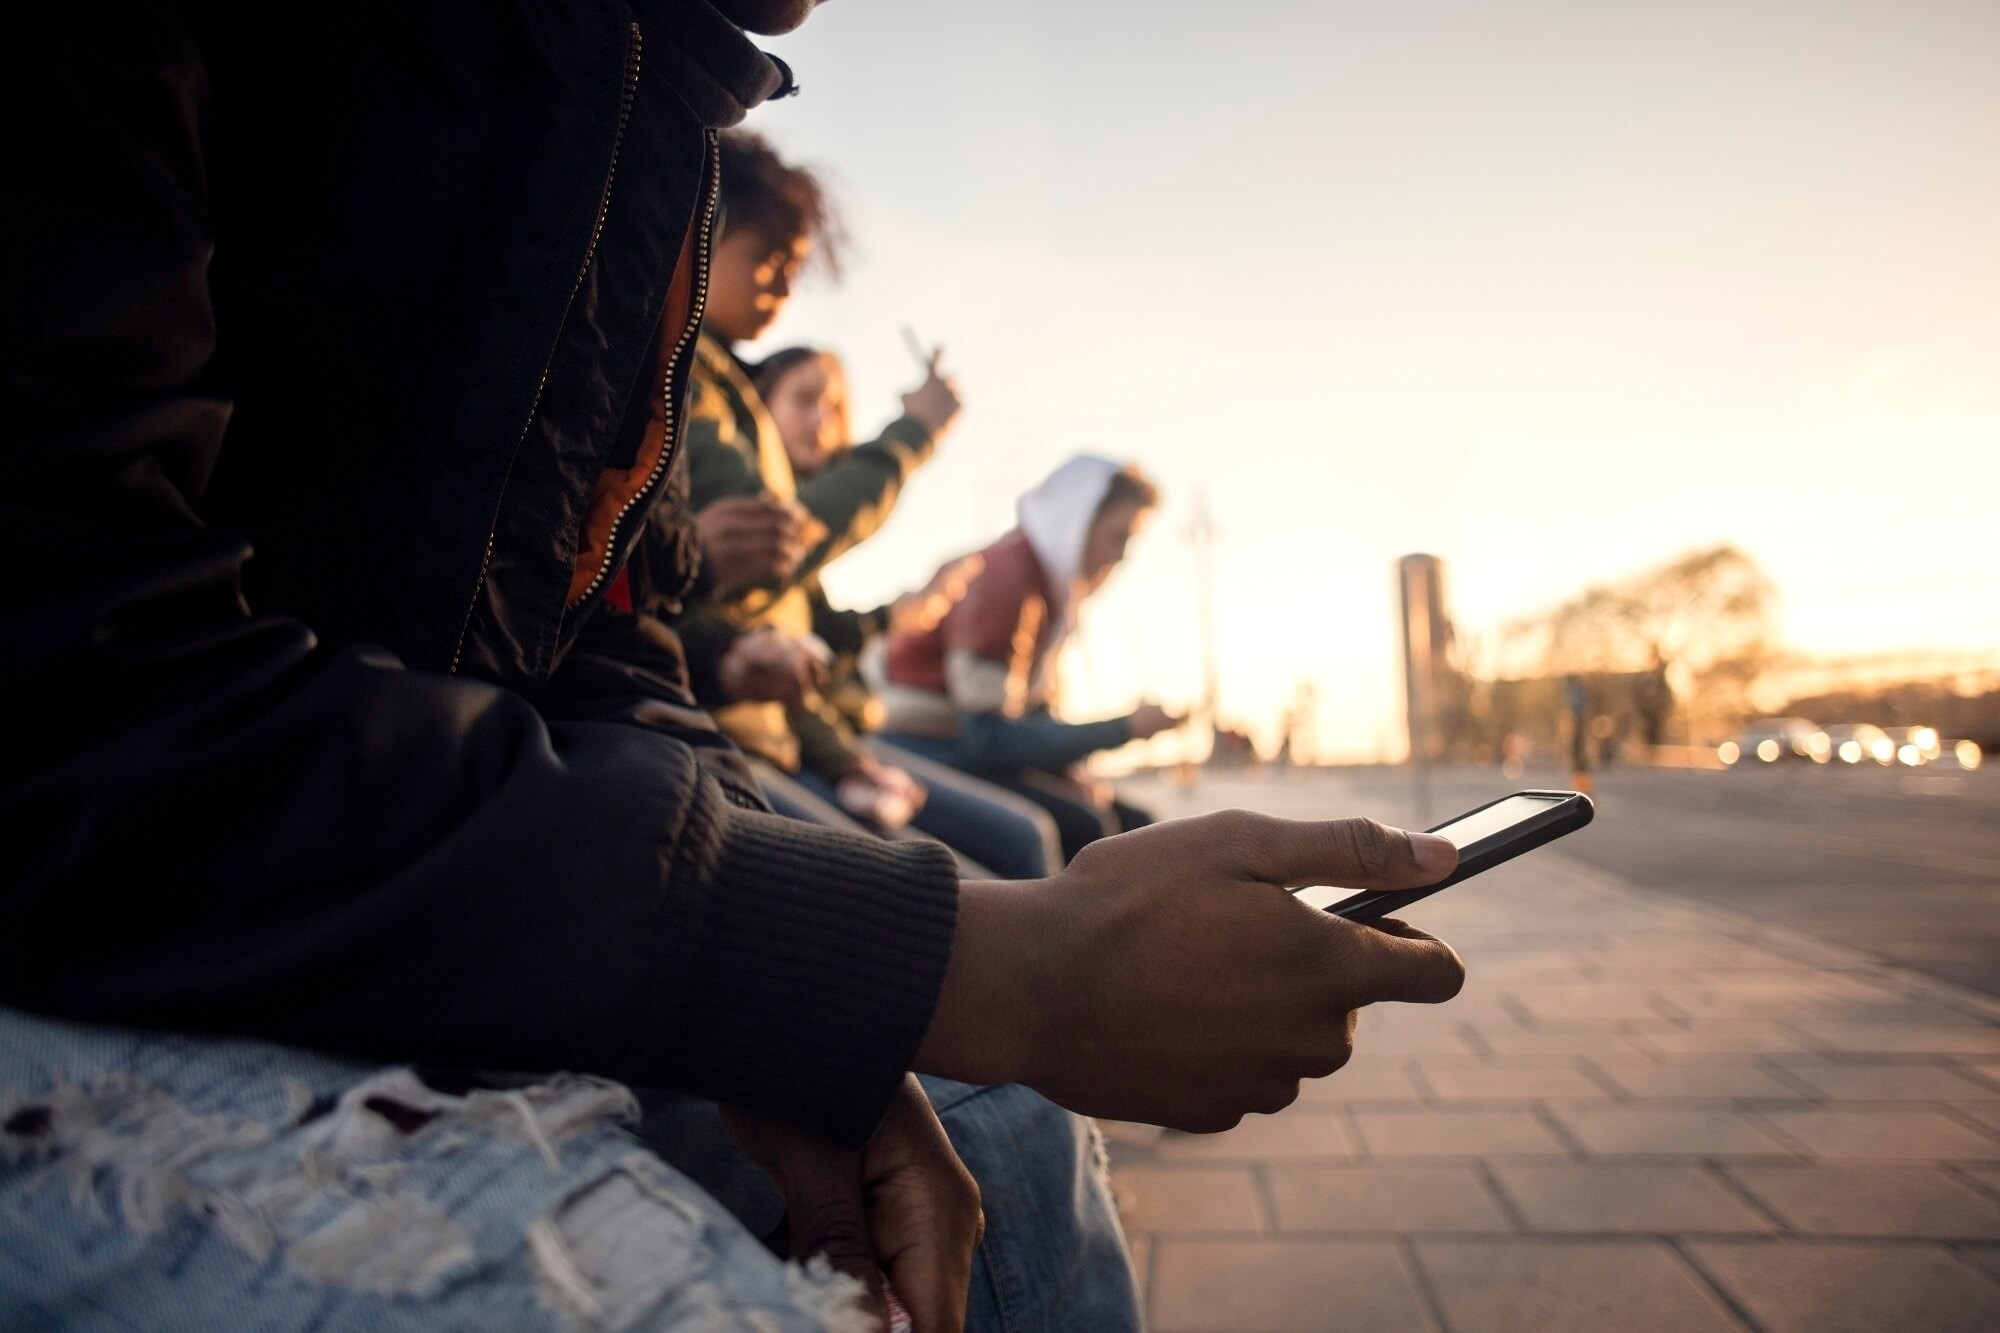 It is estimated that 95% of youth aged 13 to 17 years across all demographic groups use smartphones, with near-constant internet use reported by 45% of teens.